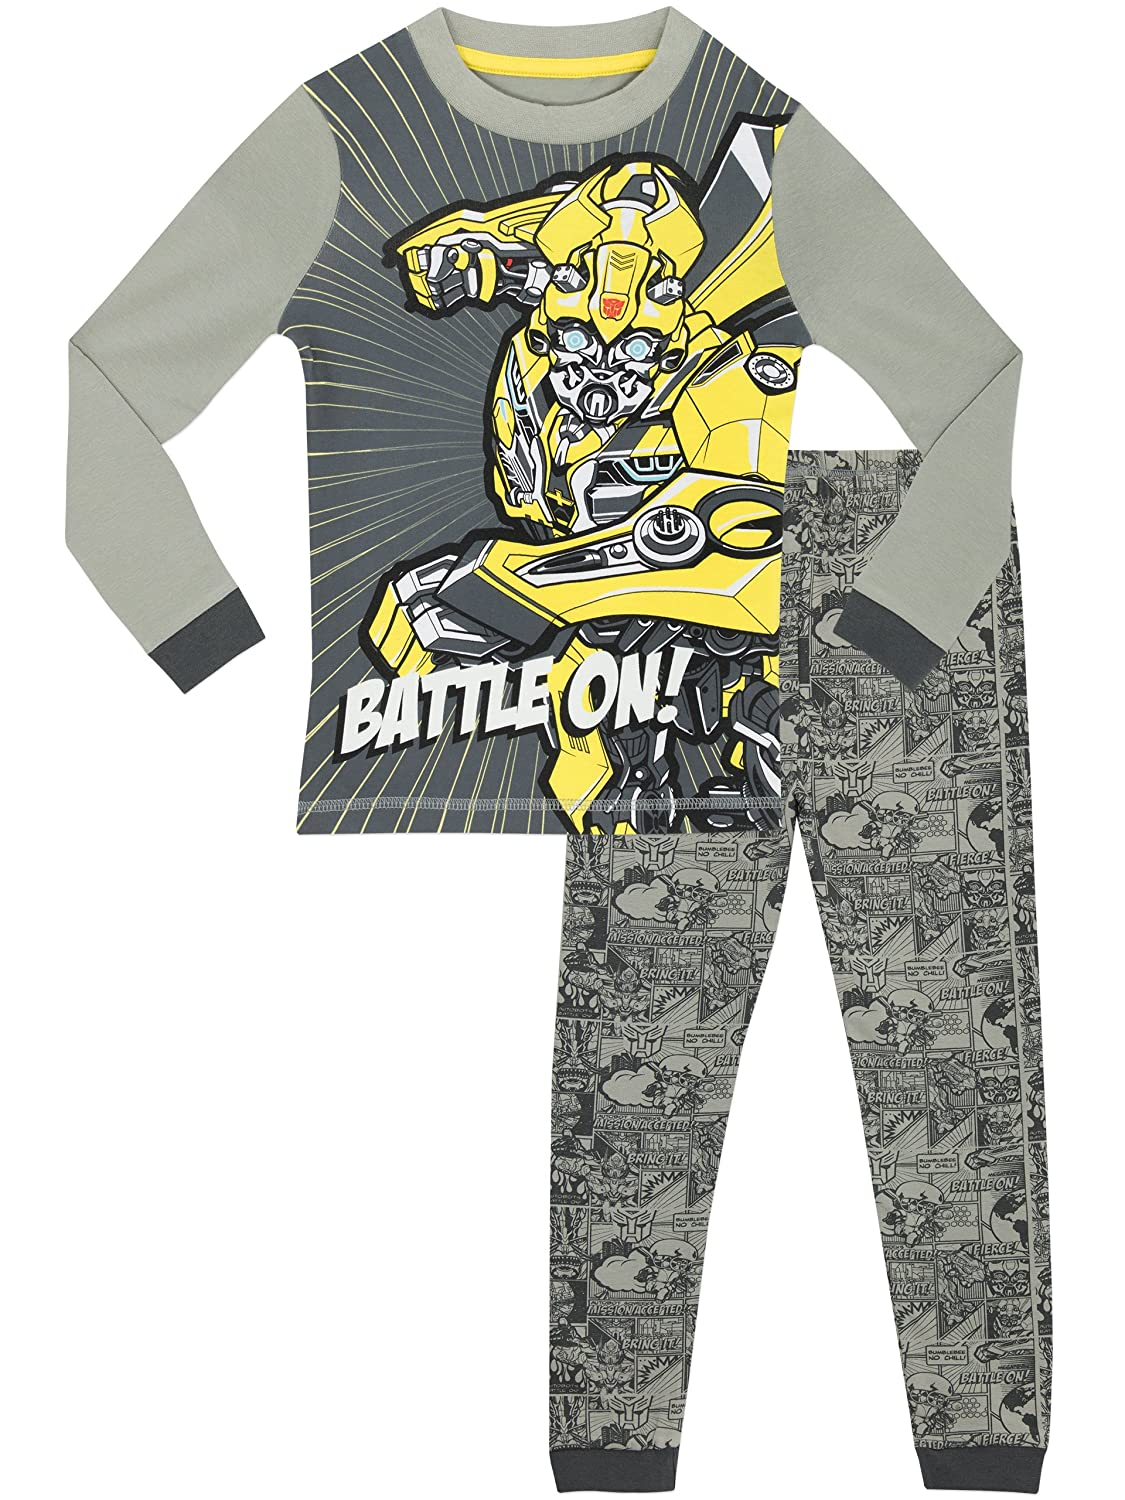 Transformers Boys Glow in The Dark Pajamas